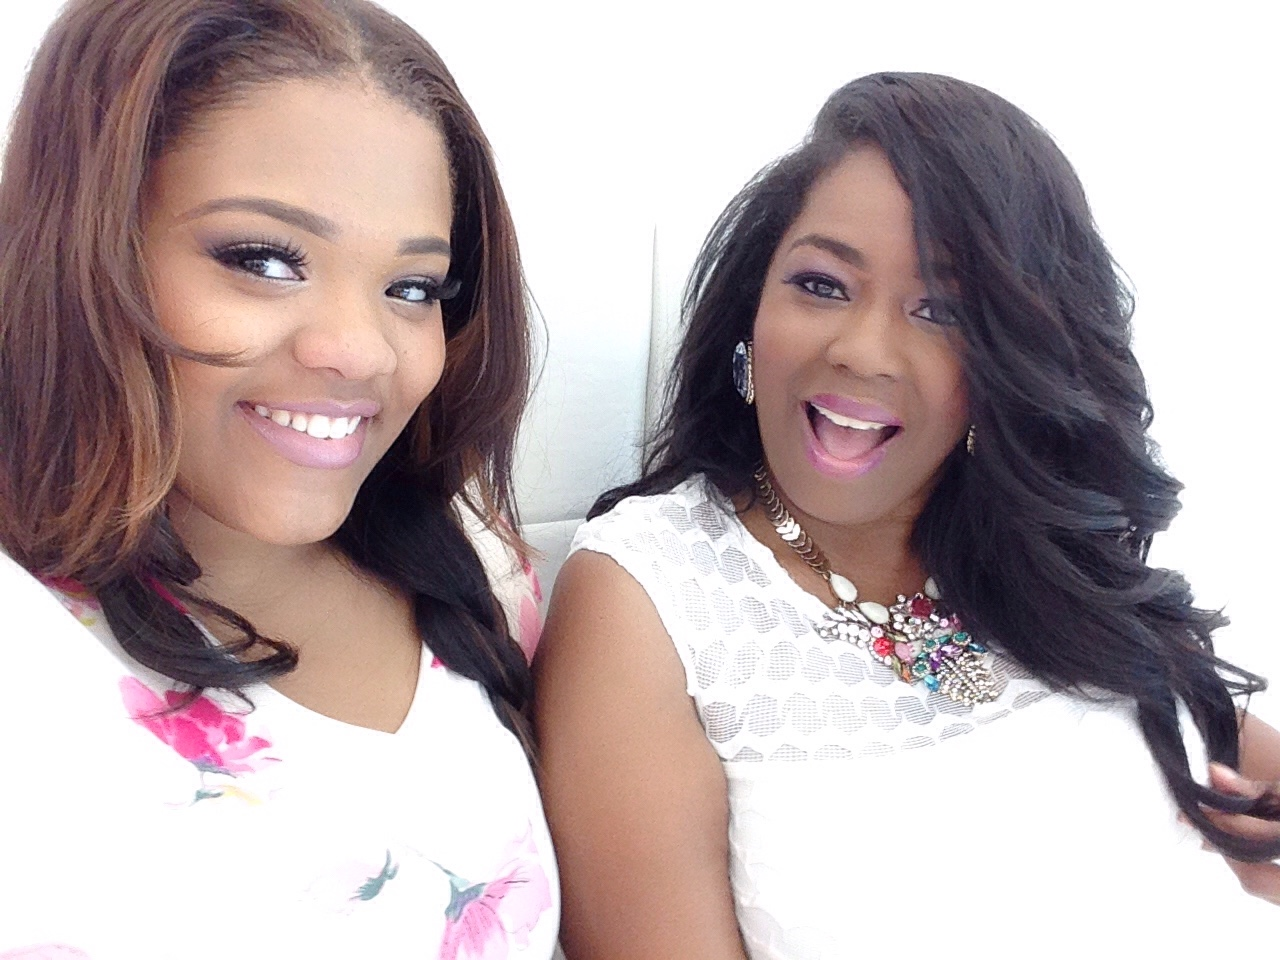 Pinktastic Saturday: Behind-The-Scenes Ashley Stewart Photoshoot